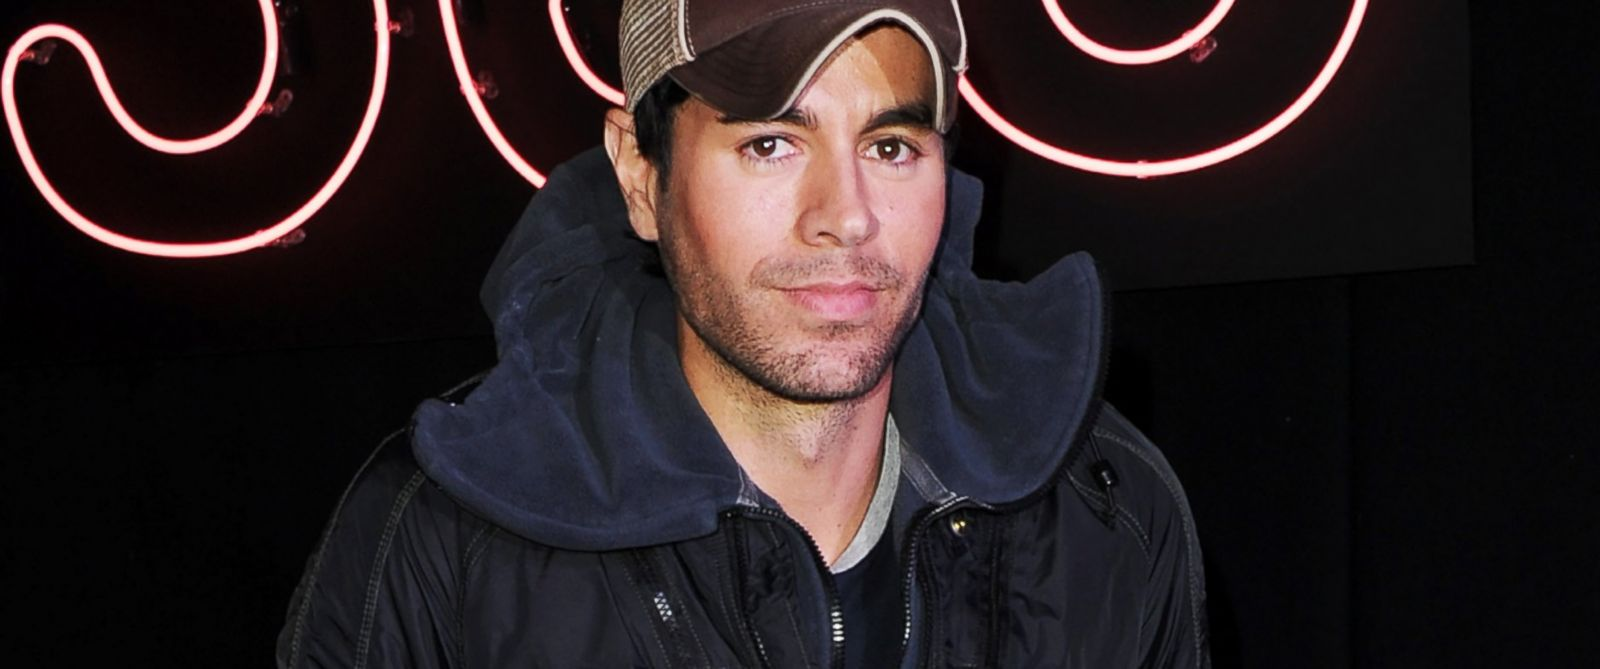 PHOTO: Enrique Iglesias meets fans and signs copies of his new album Sex + Love at HMV, Oxford Street on March 27, 2014 in London, England.